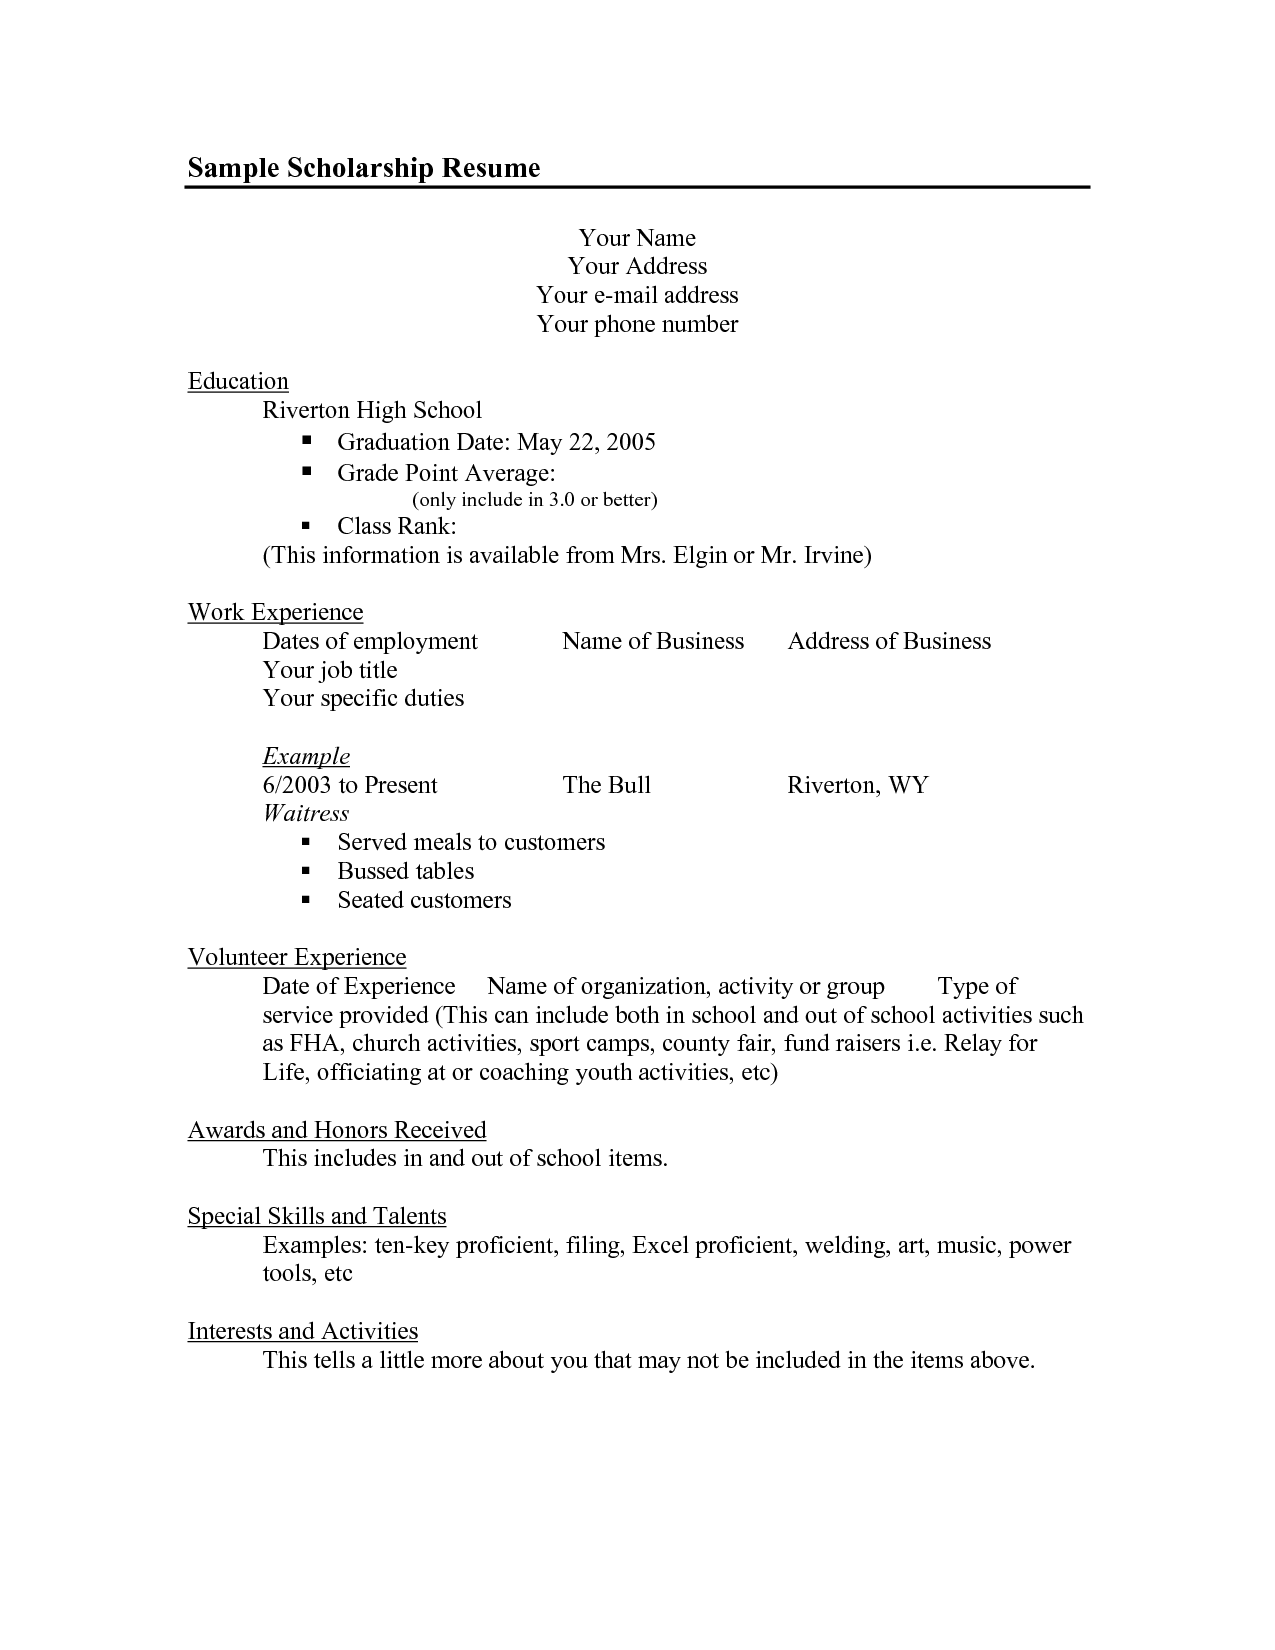 Scholarship Resume Templates | Sample Scholarship Resume Graduation Date  May 22, 2005  Examples Of Resumes For High School Students